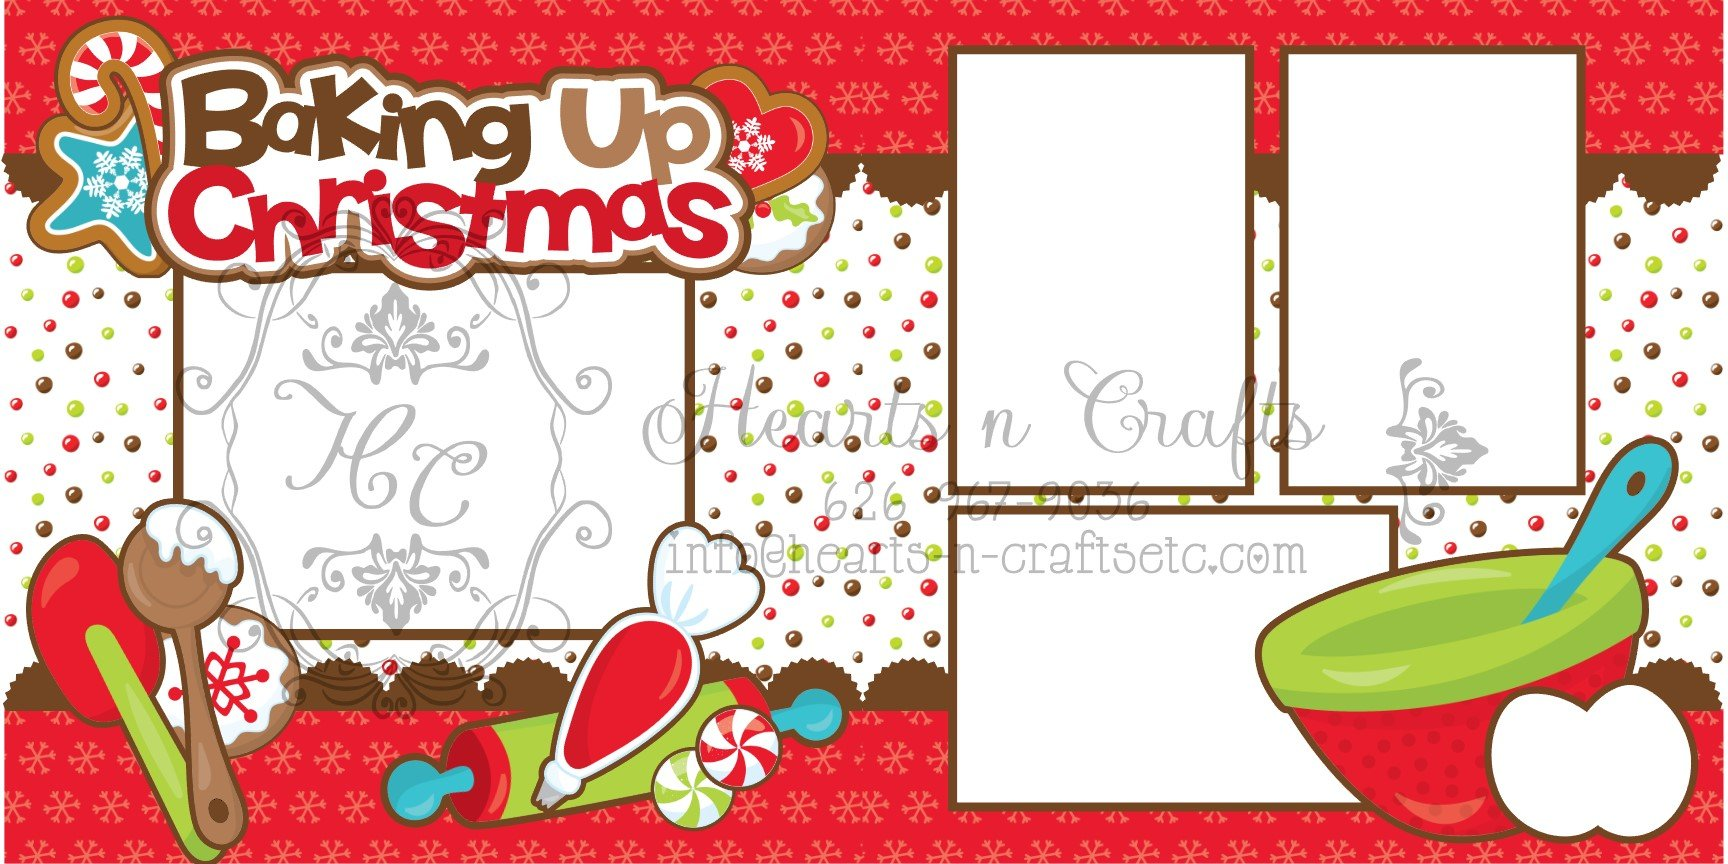 Baking up Christmas - 2 Page Layout